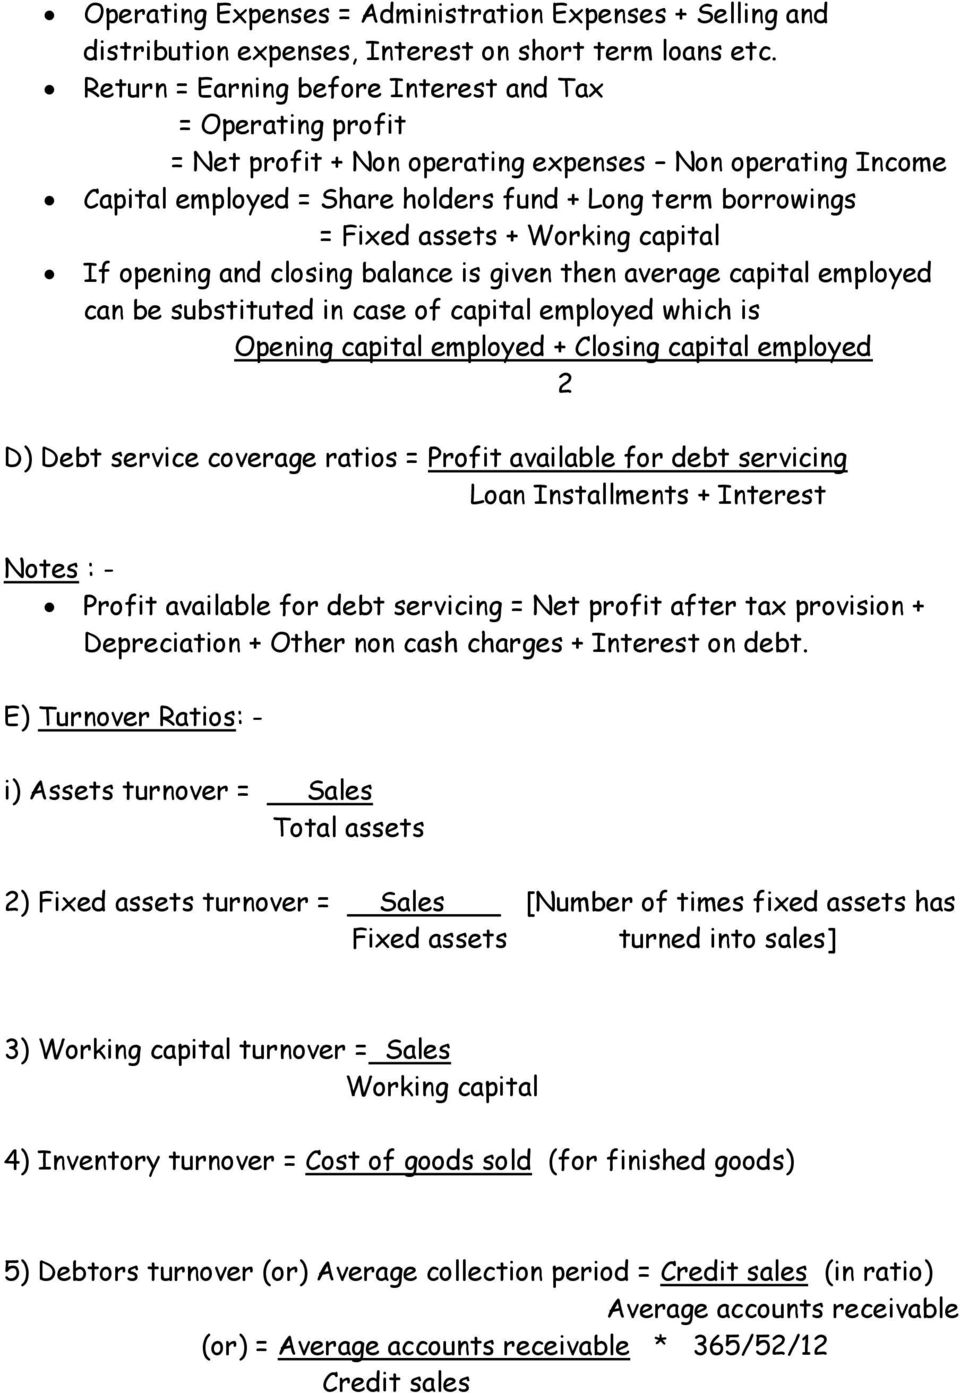 Working capital If opening and closing balance is given then average capital employed can be substituted in case of capital employed which is Opening capital employed + Closing capital employed 2 D)